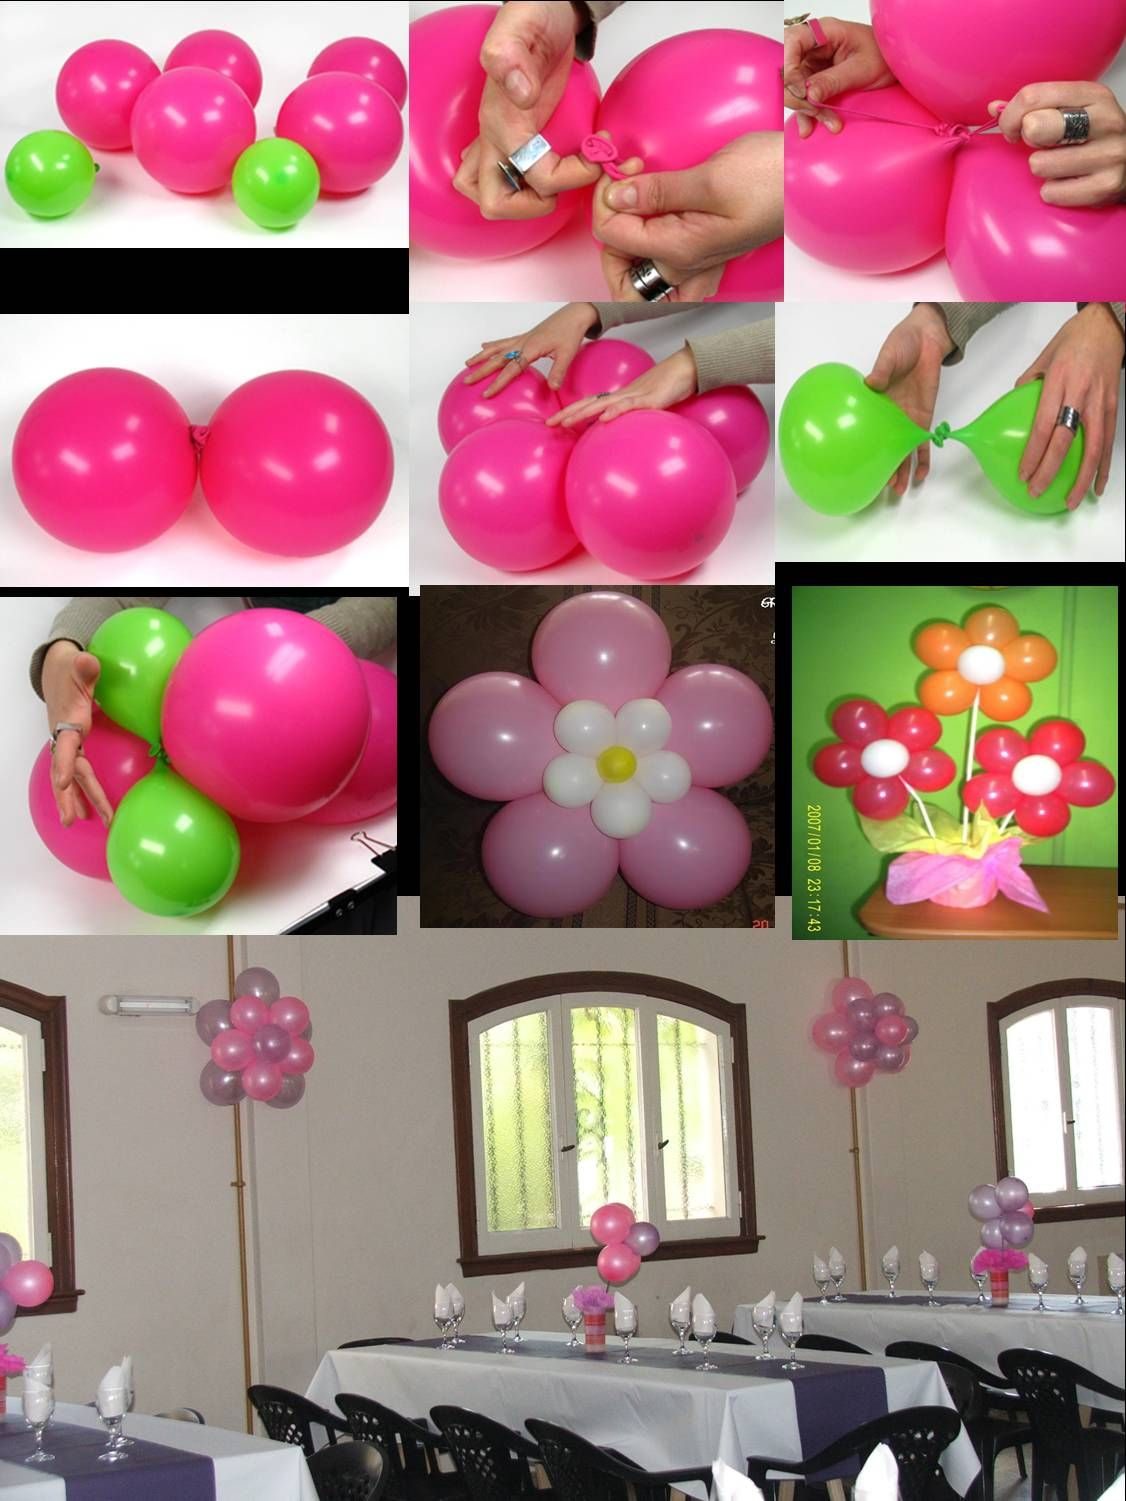 Ideas Para Decorar Salones De Fiestas Pin By Trinitarias On Fiestas Y Eventos Globos De Cumpleaños